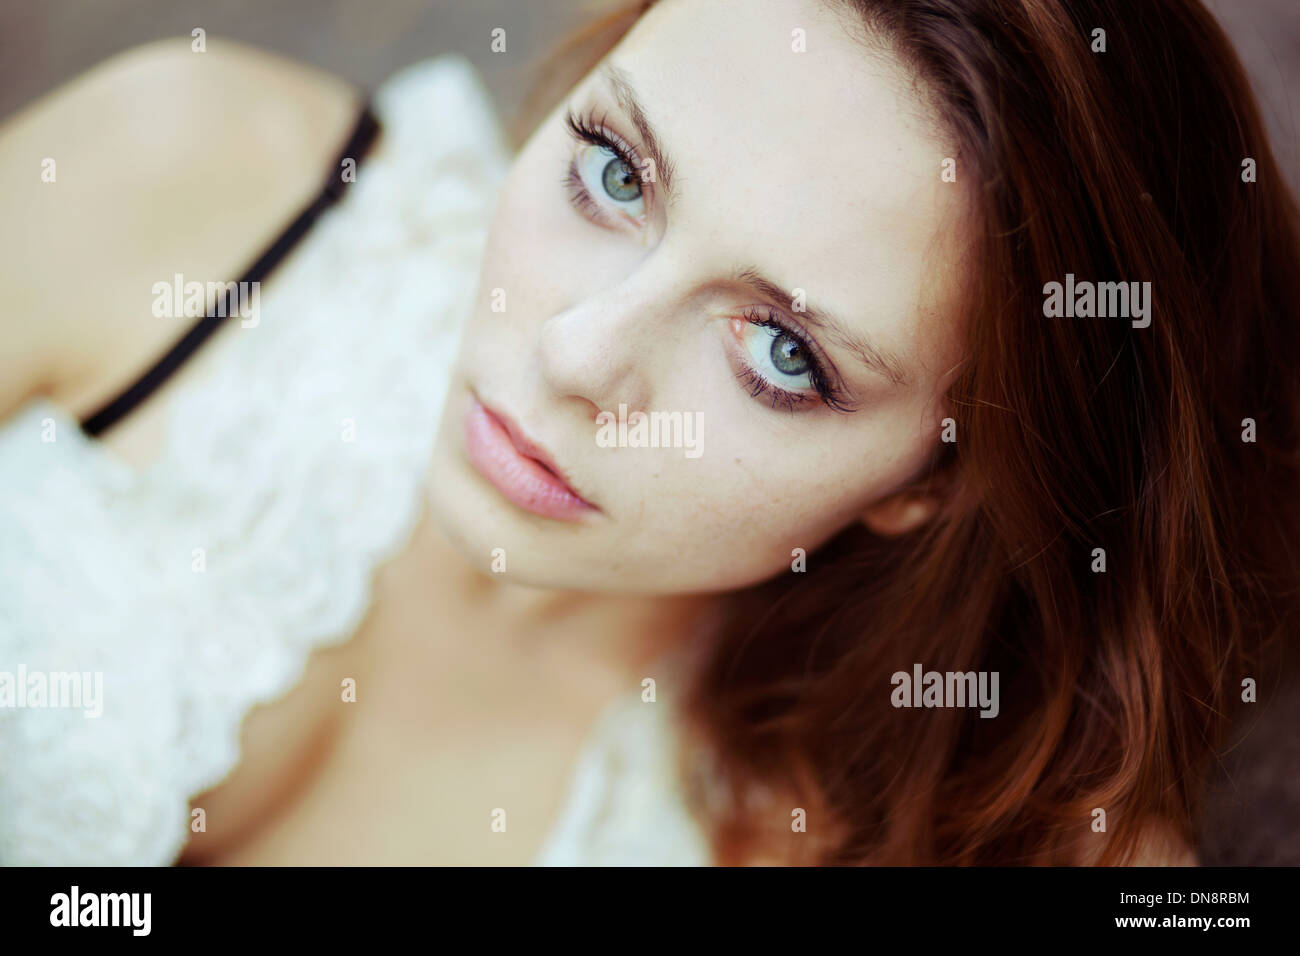 Portrait of young woman looking at camera Photo Stock